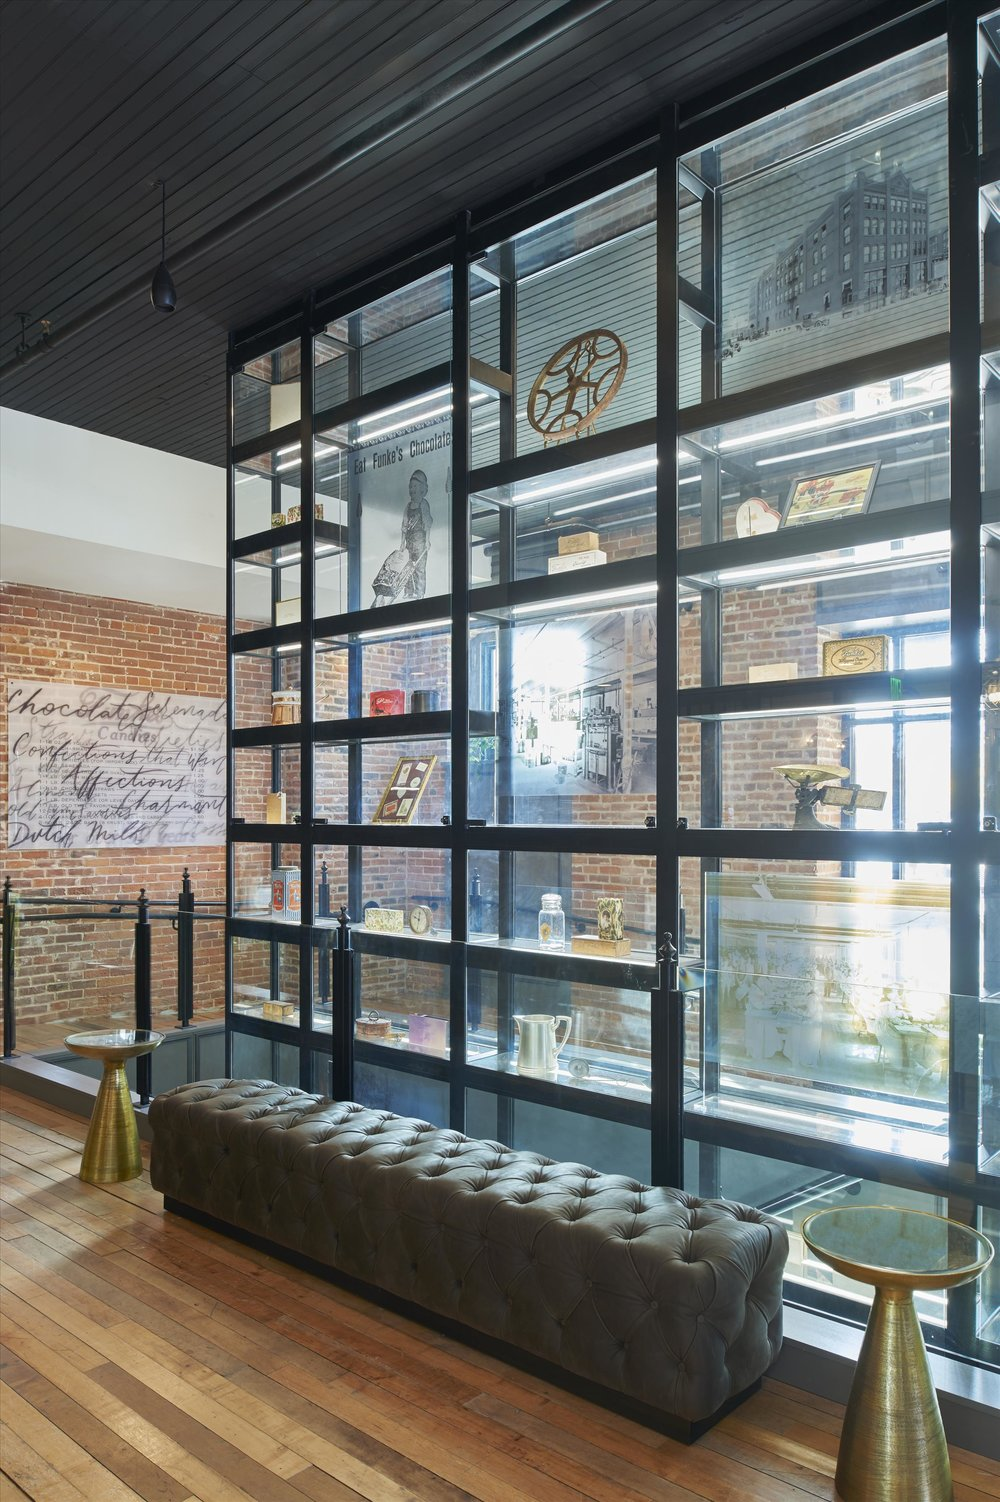 CHARMANT HOTEL - Curated by Indiewalls